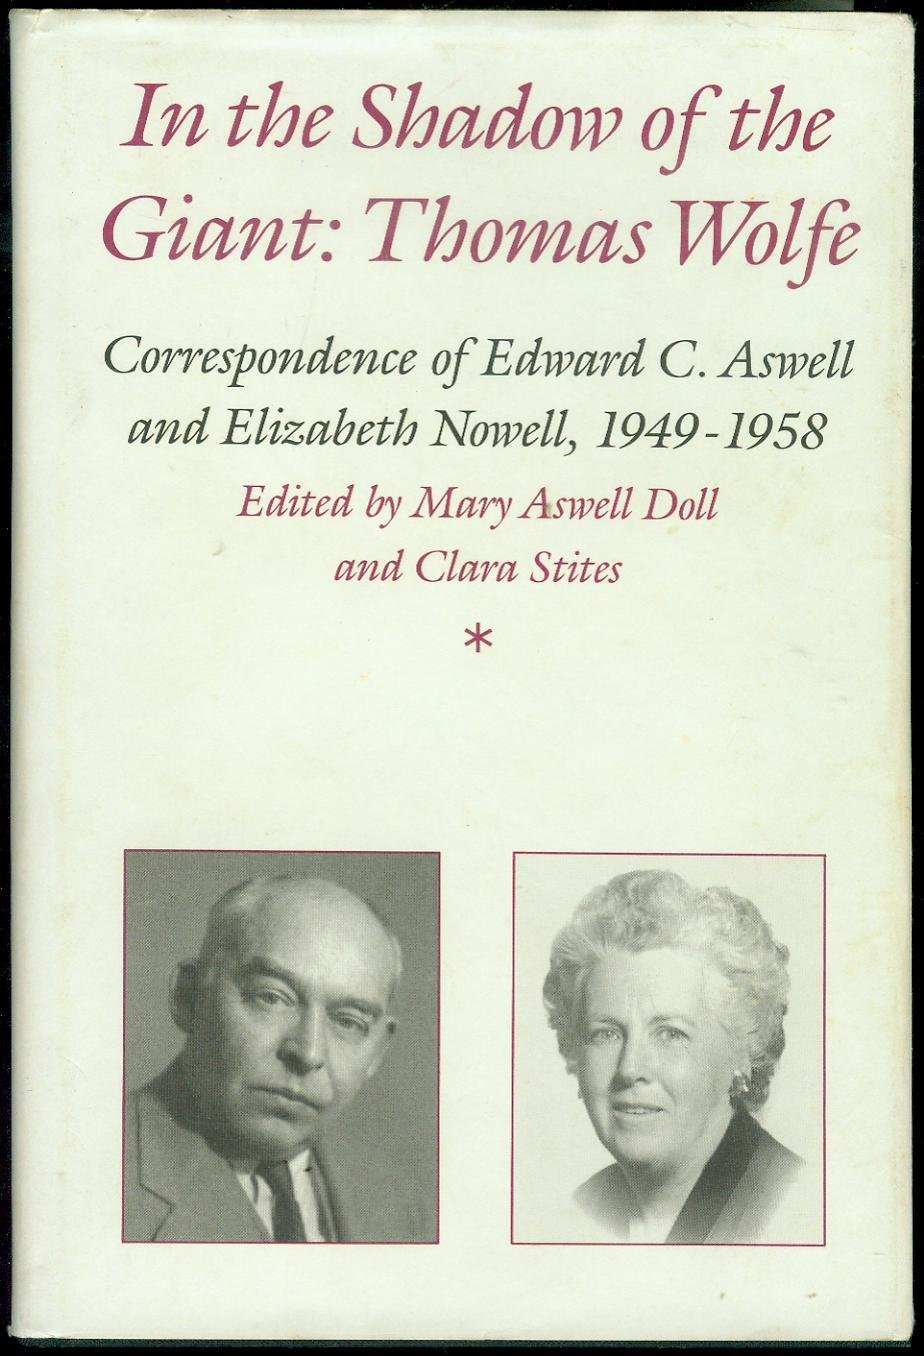 In the Shadow of the Giant, Thomas Wolfe: Correspondence of Edward C. Aswell and Elizabeth Nowell, 1949-1958